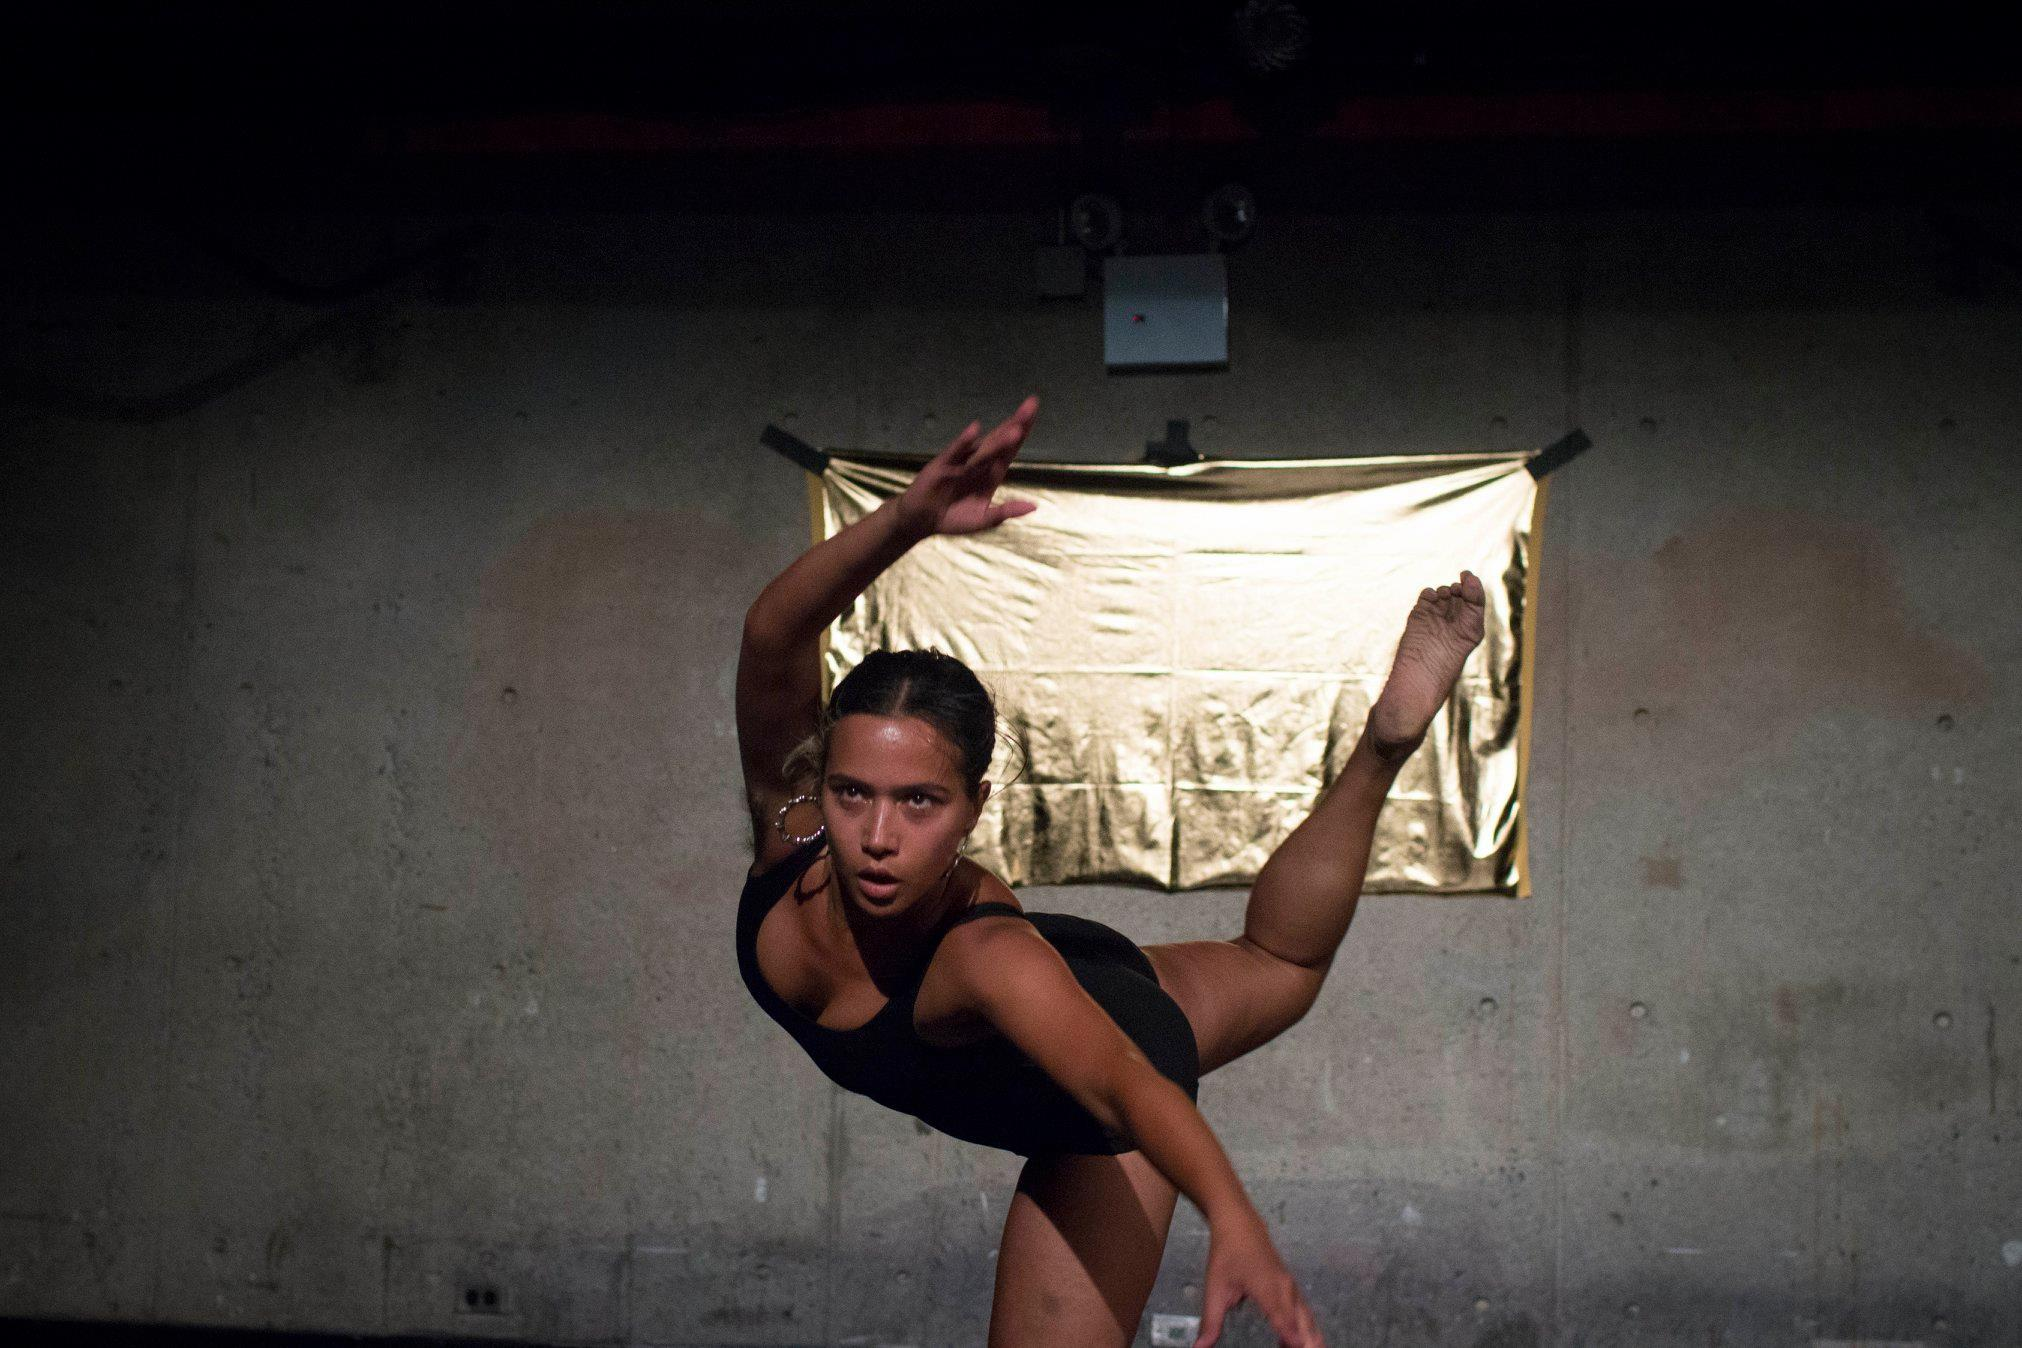 """As the end of Elza Soares' """"Woman at the End of the World"""" approached Rad grew emotional, empowered, passionate and frenzied. Jumping between moments of rigorous athletic wildness and strict classical moves that confined them."""